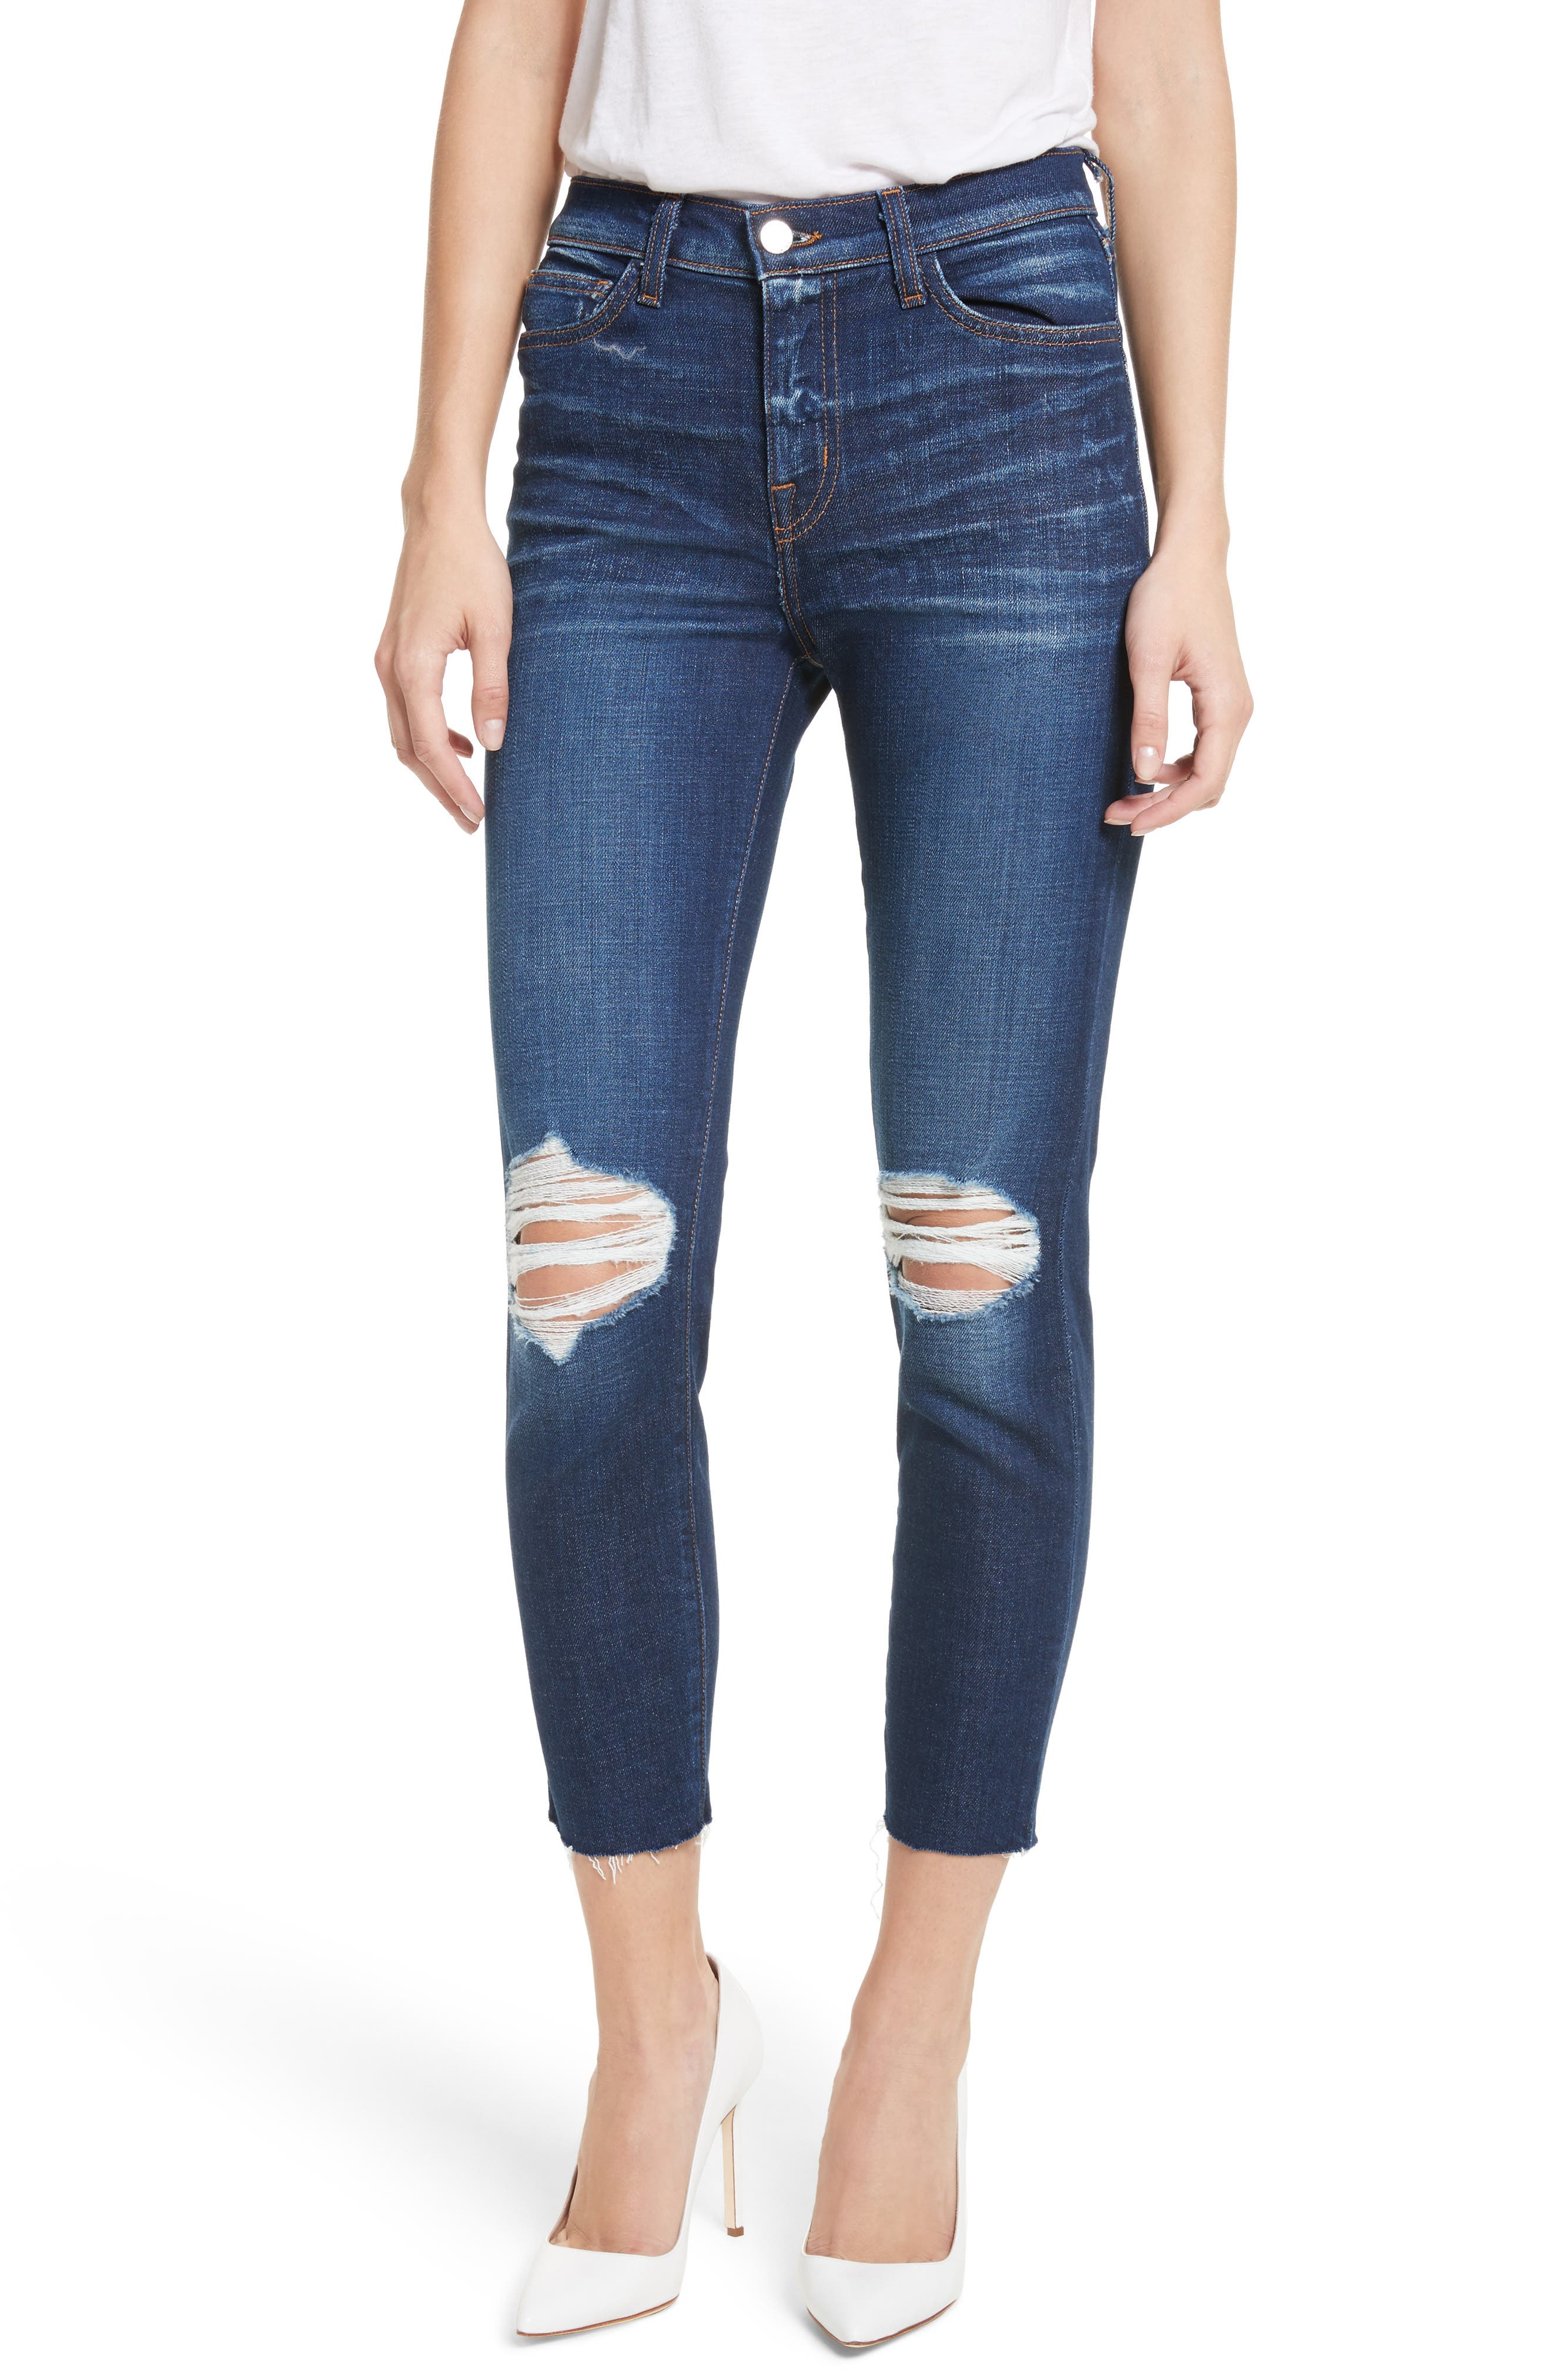 Abigail French Slim Ripped Skinny Jeans,                             Main thumbnail 1, color,                             401